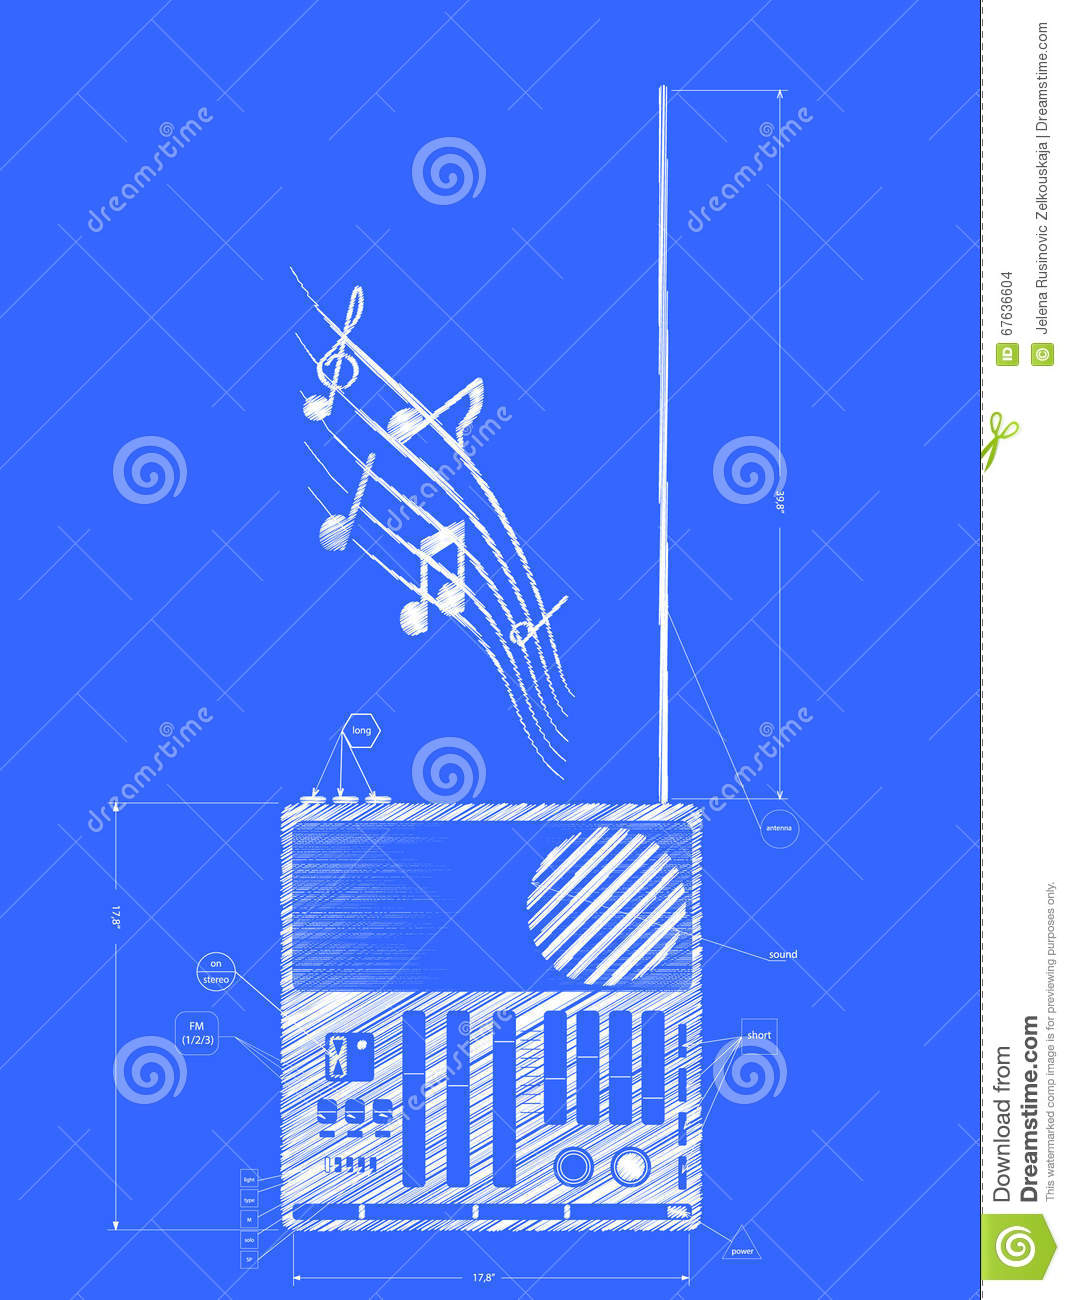 Old radio blueprint drawing stock vector illustration of retro old radio blueprint drawing malvernweather Images